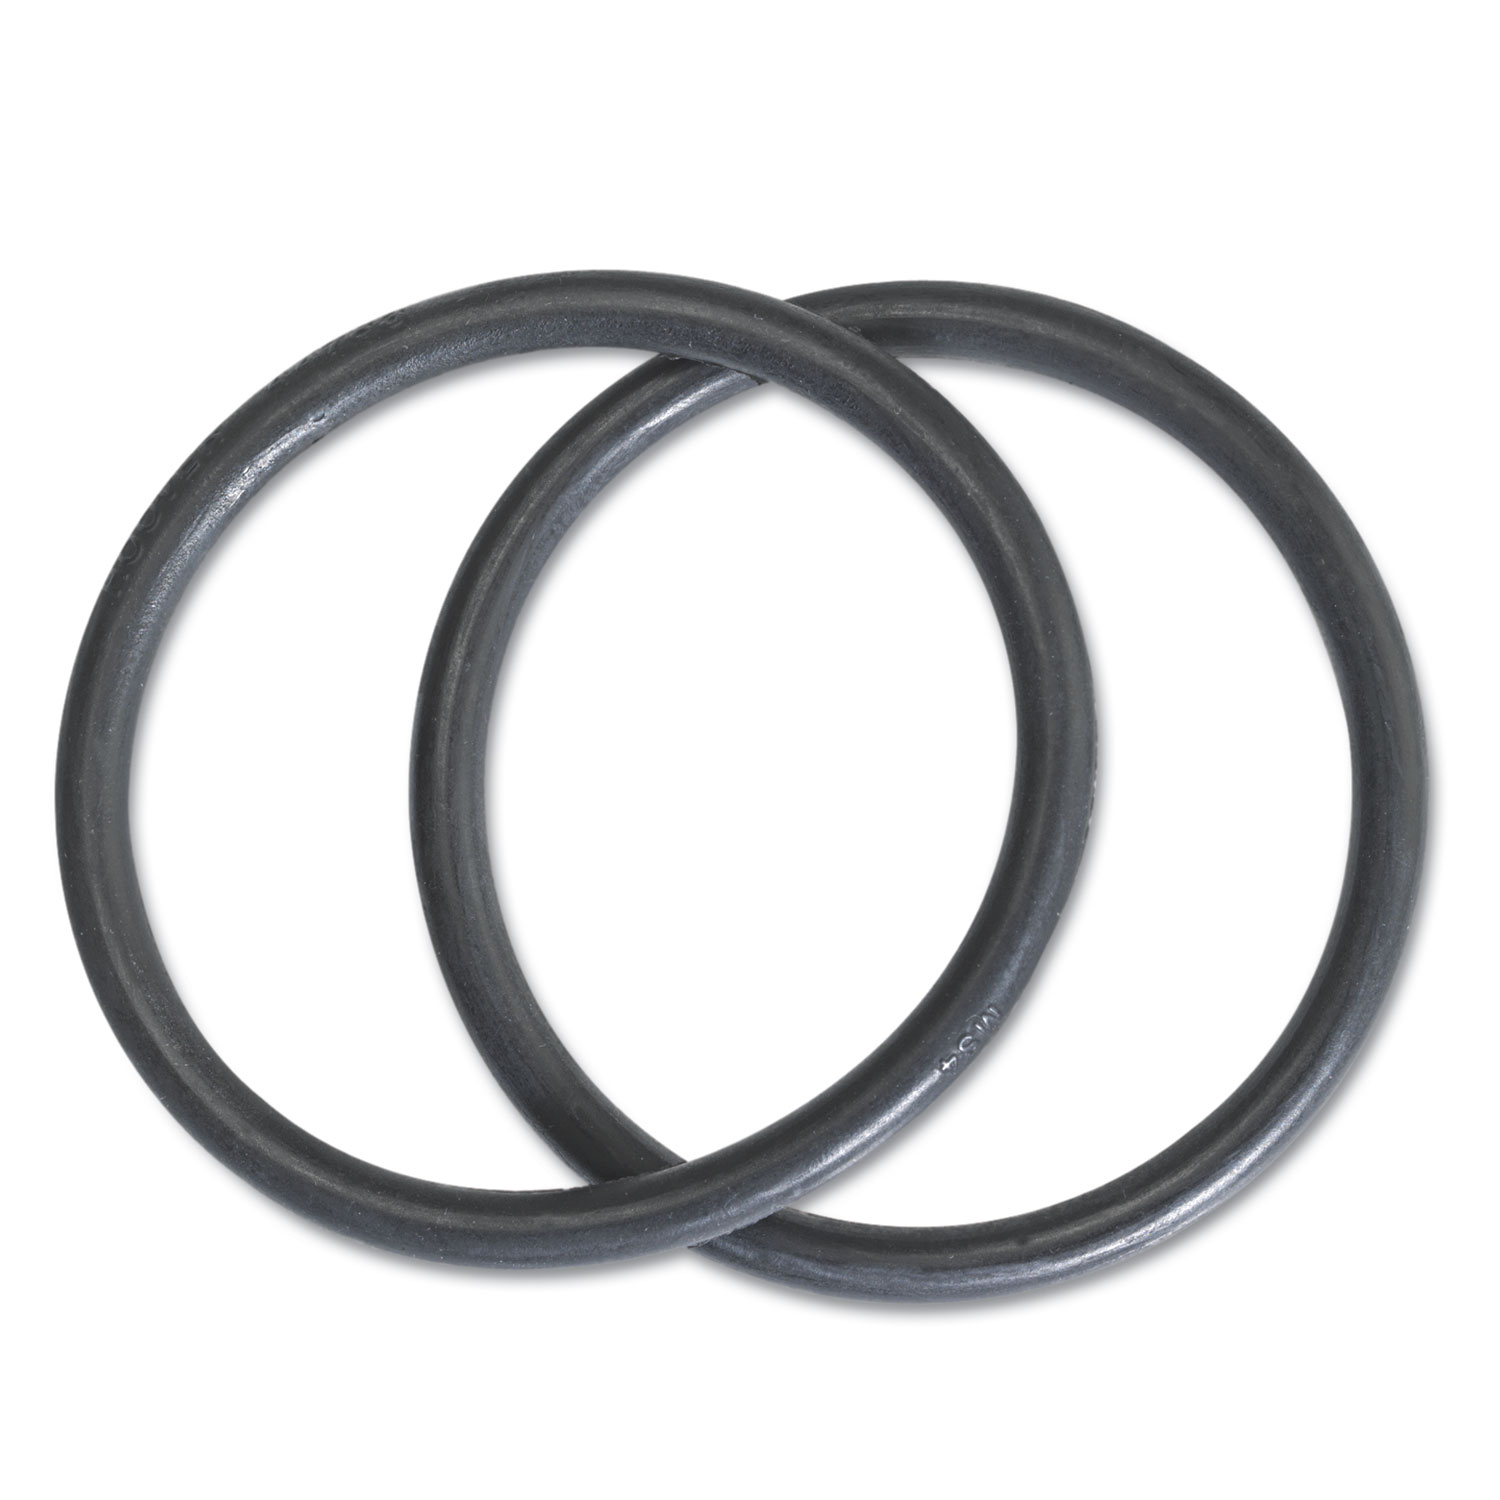 Hoover Commercial AH20075 REPLACEMENT BELT FOR GUARDSMAN VACUUM CLEANERS, 2EA/PK